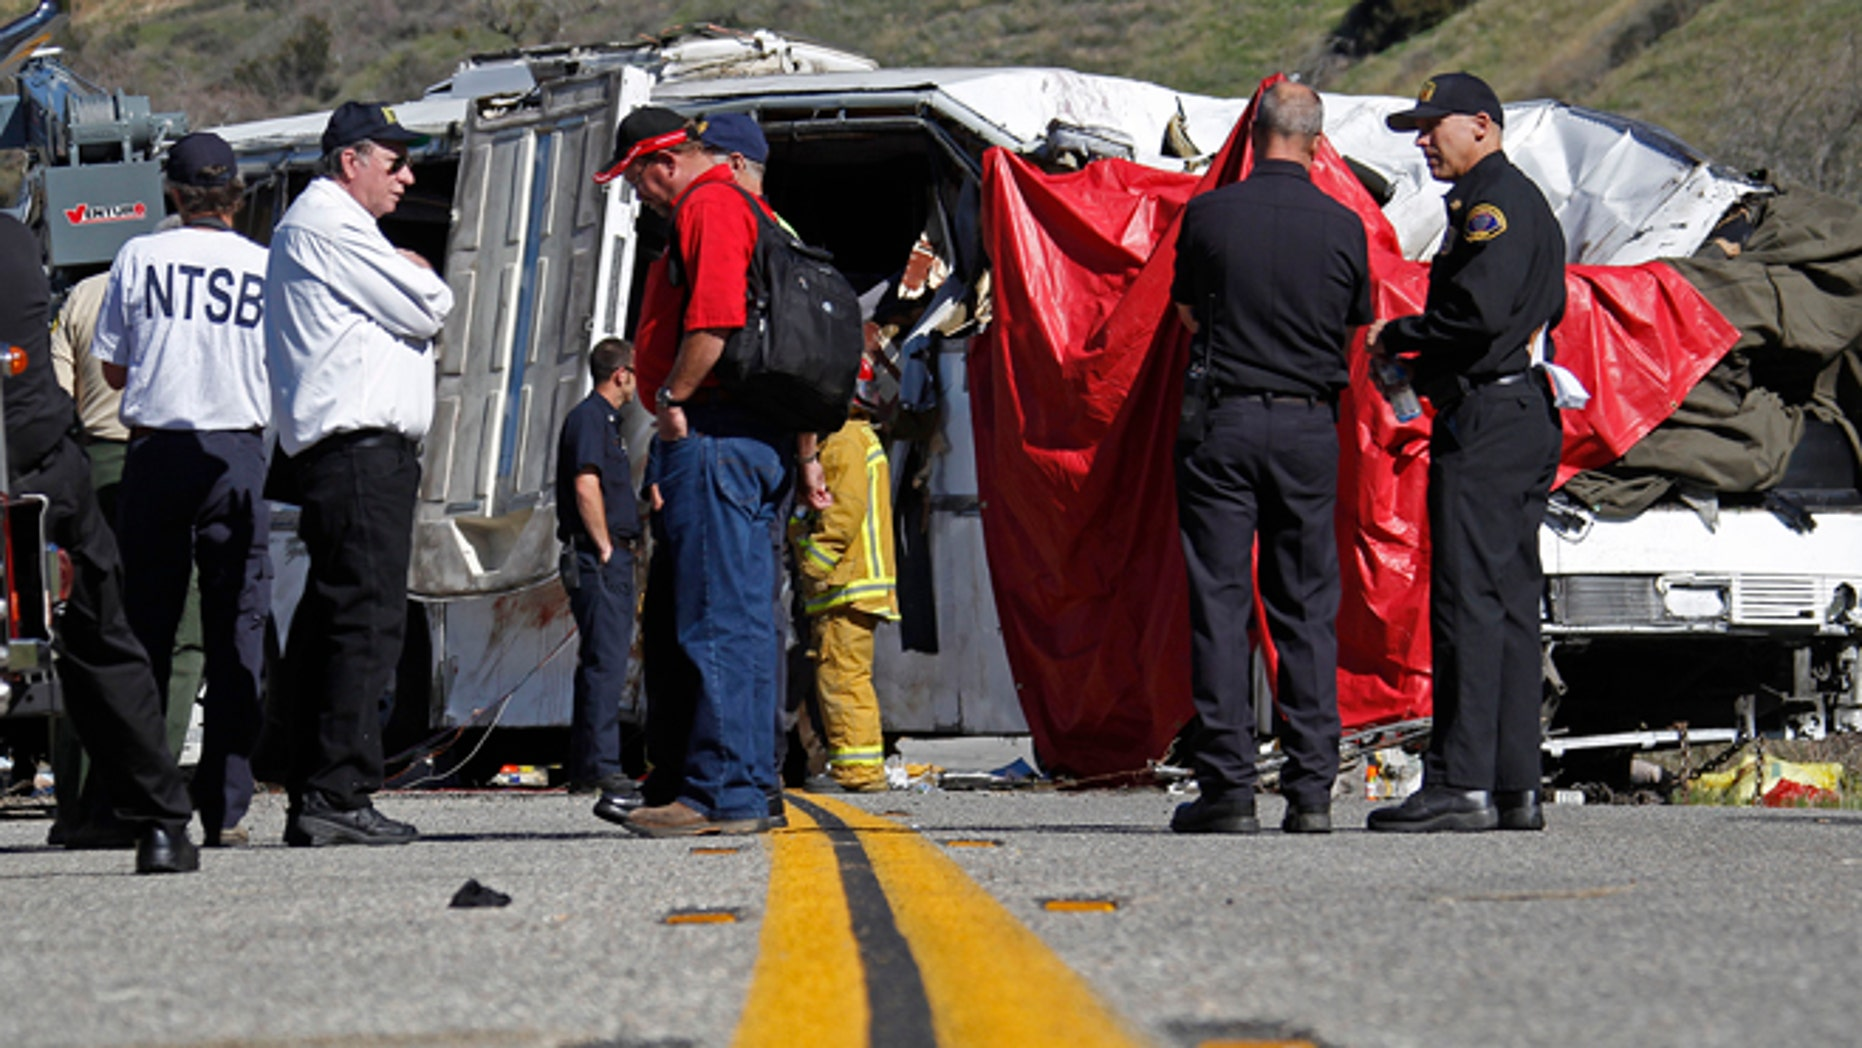 Feb. 4: Investigators stand at the scene after a tour bus was lifted back onto the road after it collided with two other vehicles and crashed, killing at least eight people and injuring 38, just north of Yucaipa, Calif.